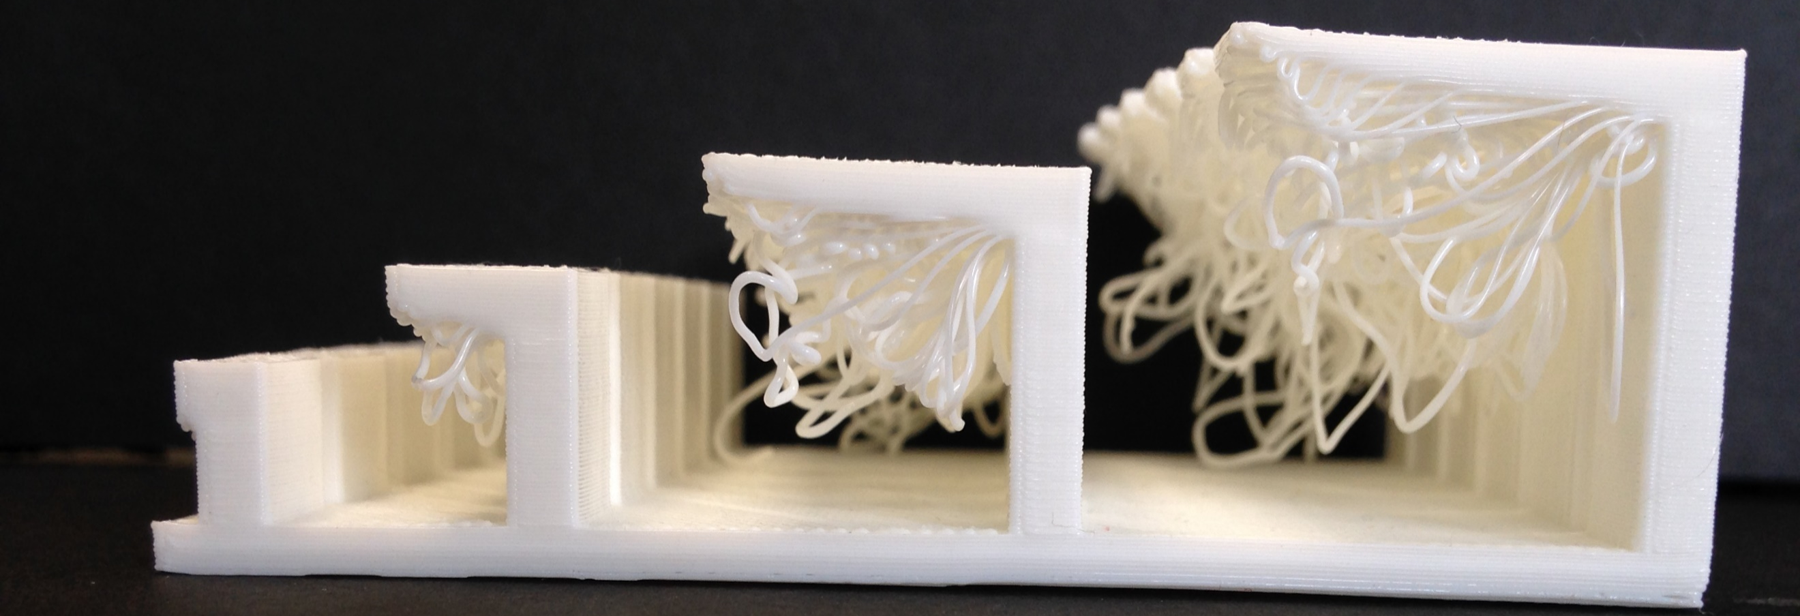 When there's no material to support a new layer, the results can be quite… stringy.